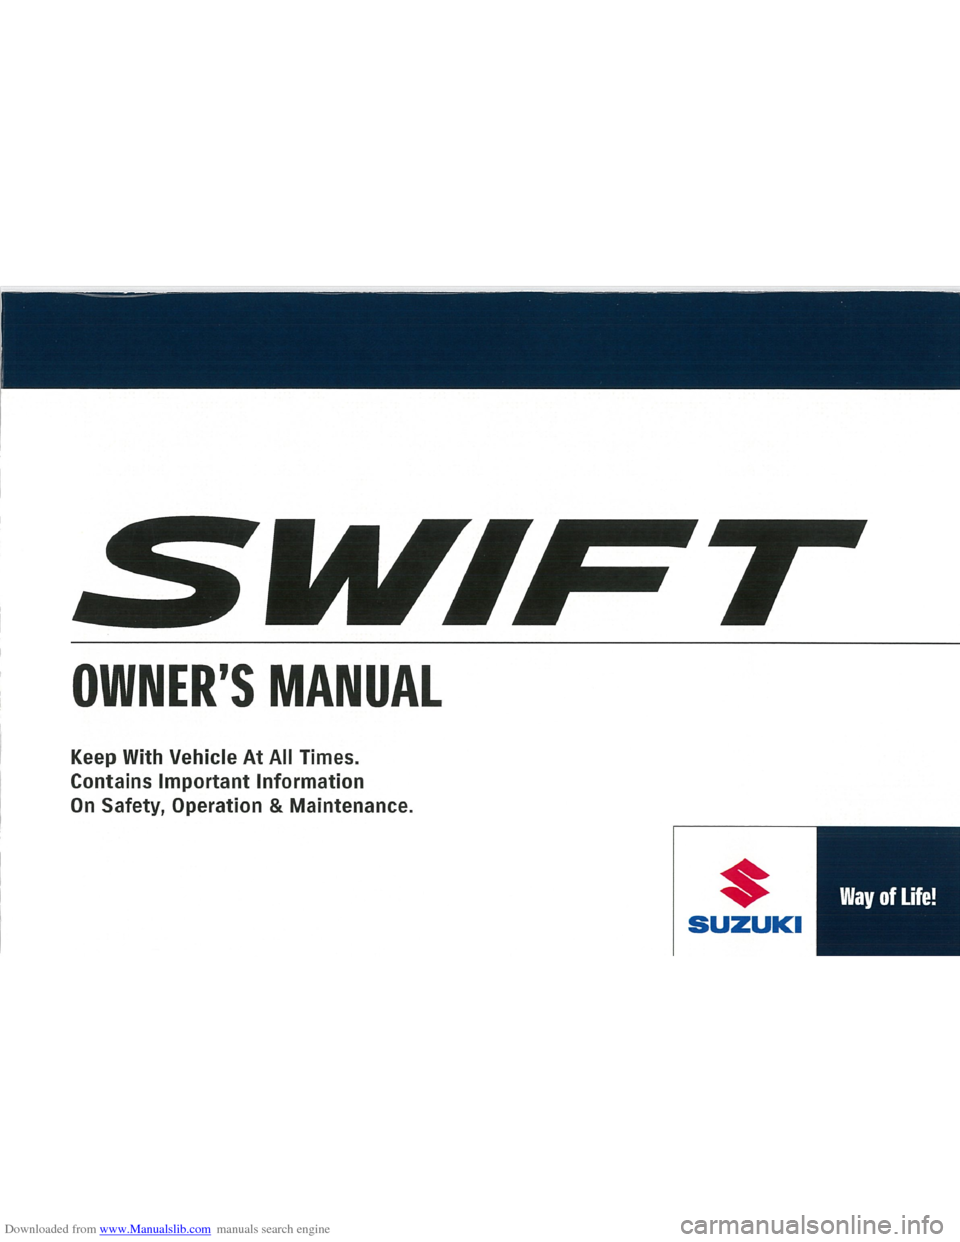 SUZUKI SWIFT 2009 2.G Owners Manual Downloaded from www.Manualslib.com manuals search engine